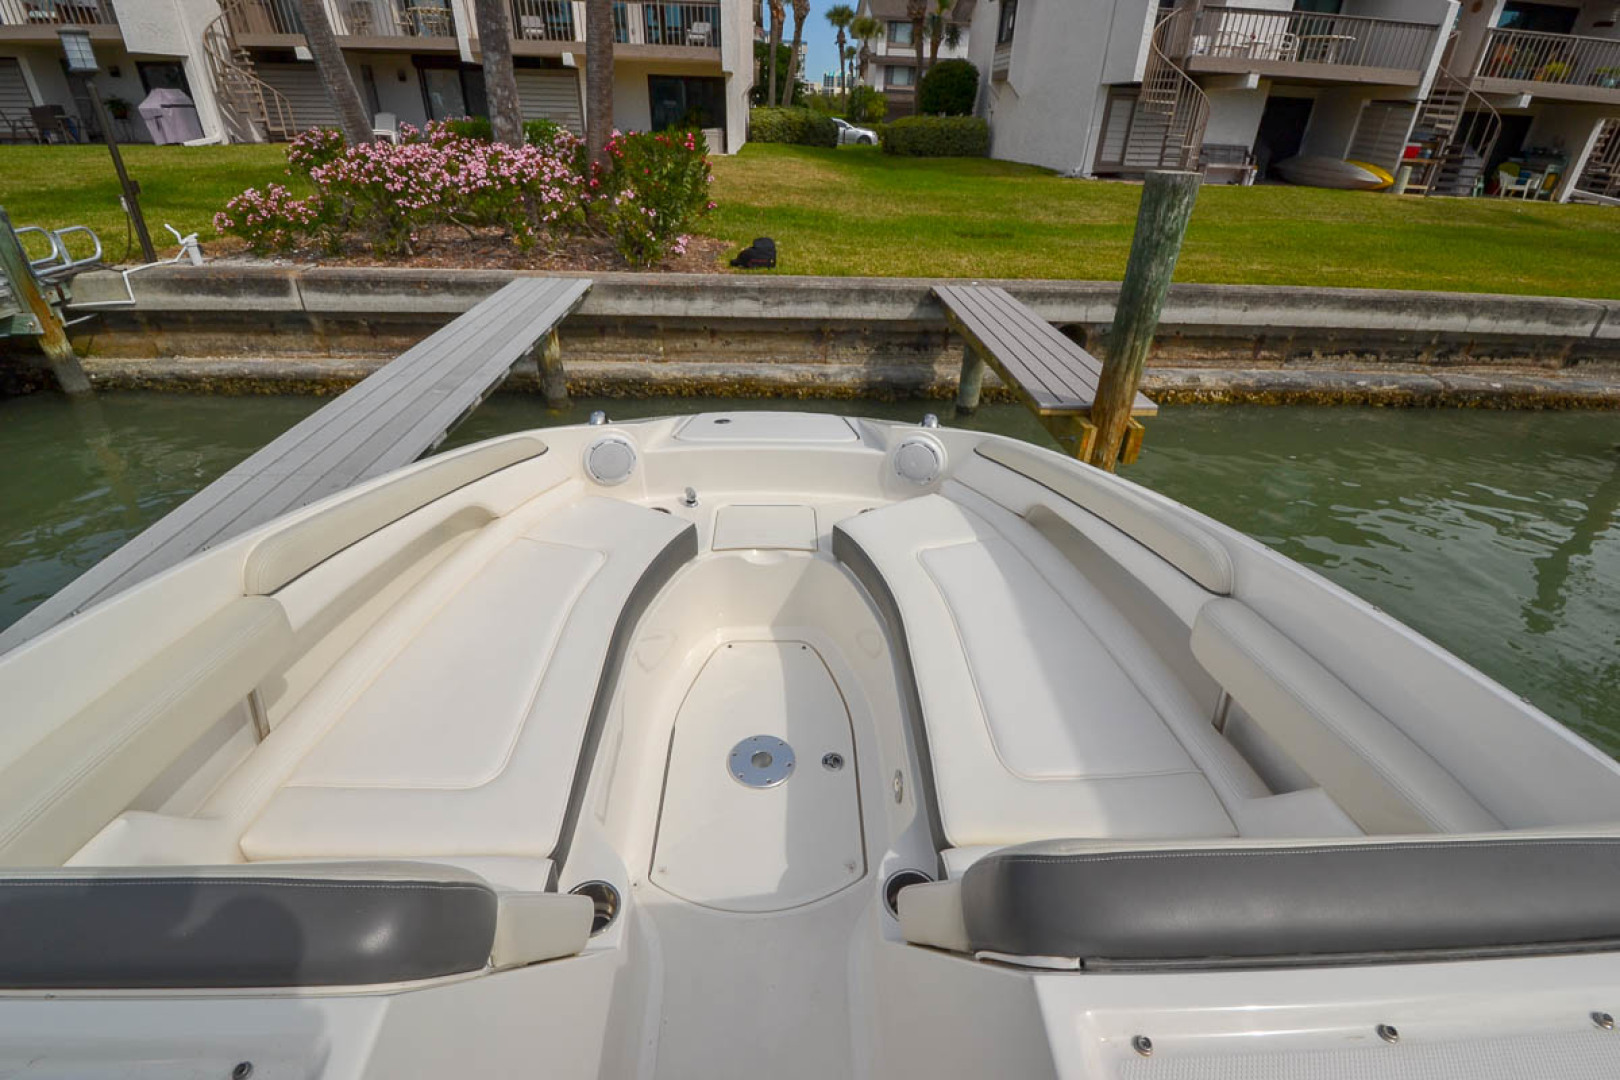 2012 Sea Ray 260 SunDeck-5.jpg